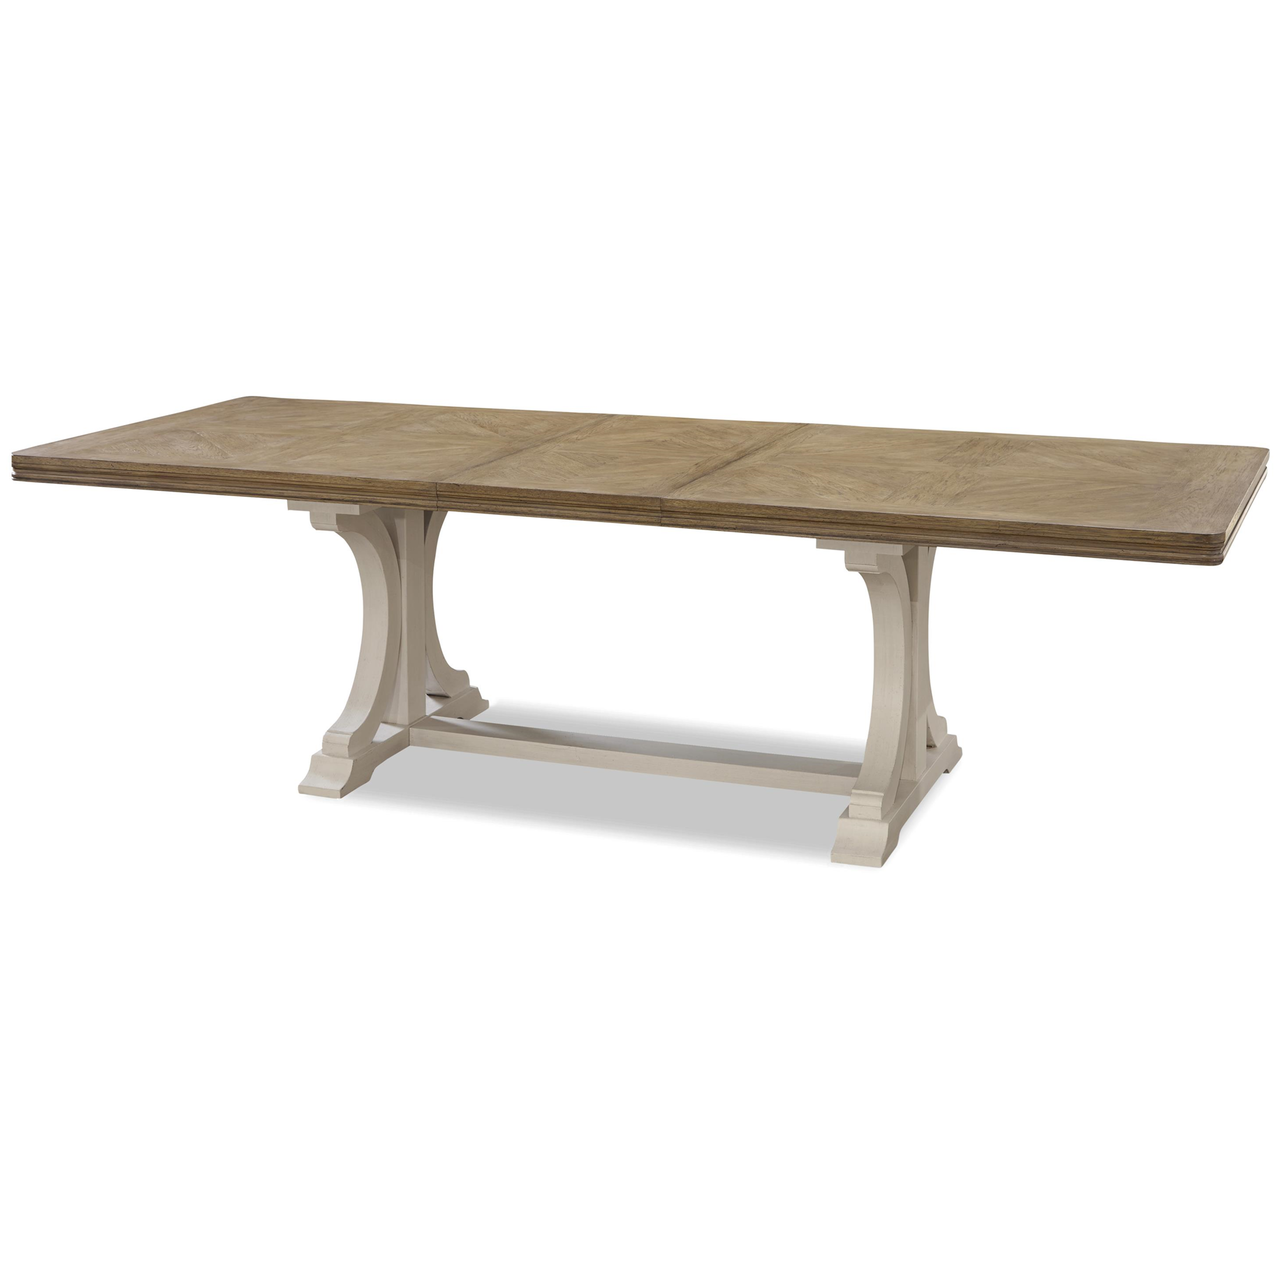 French modern light wood trestle extension dining table for Dining room tables light wood